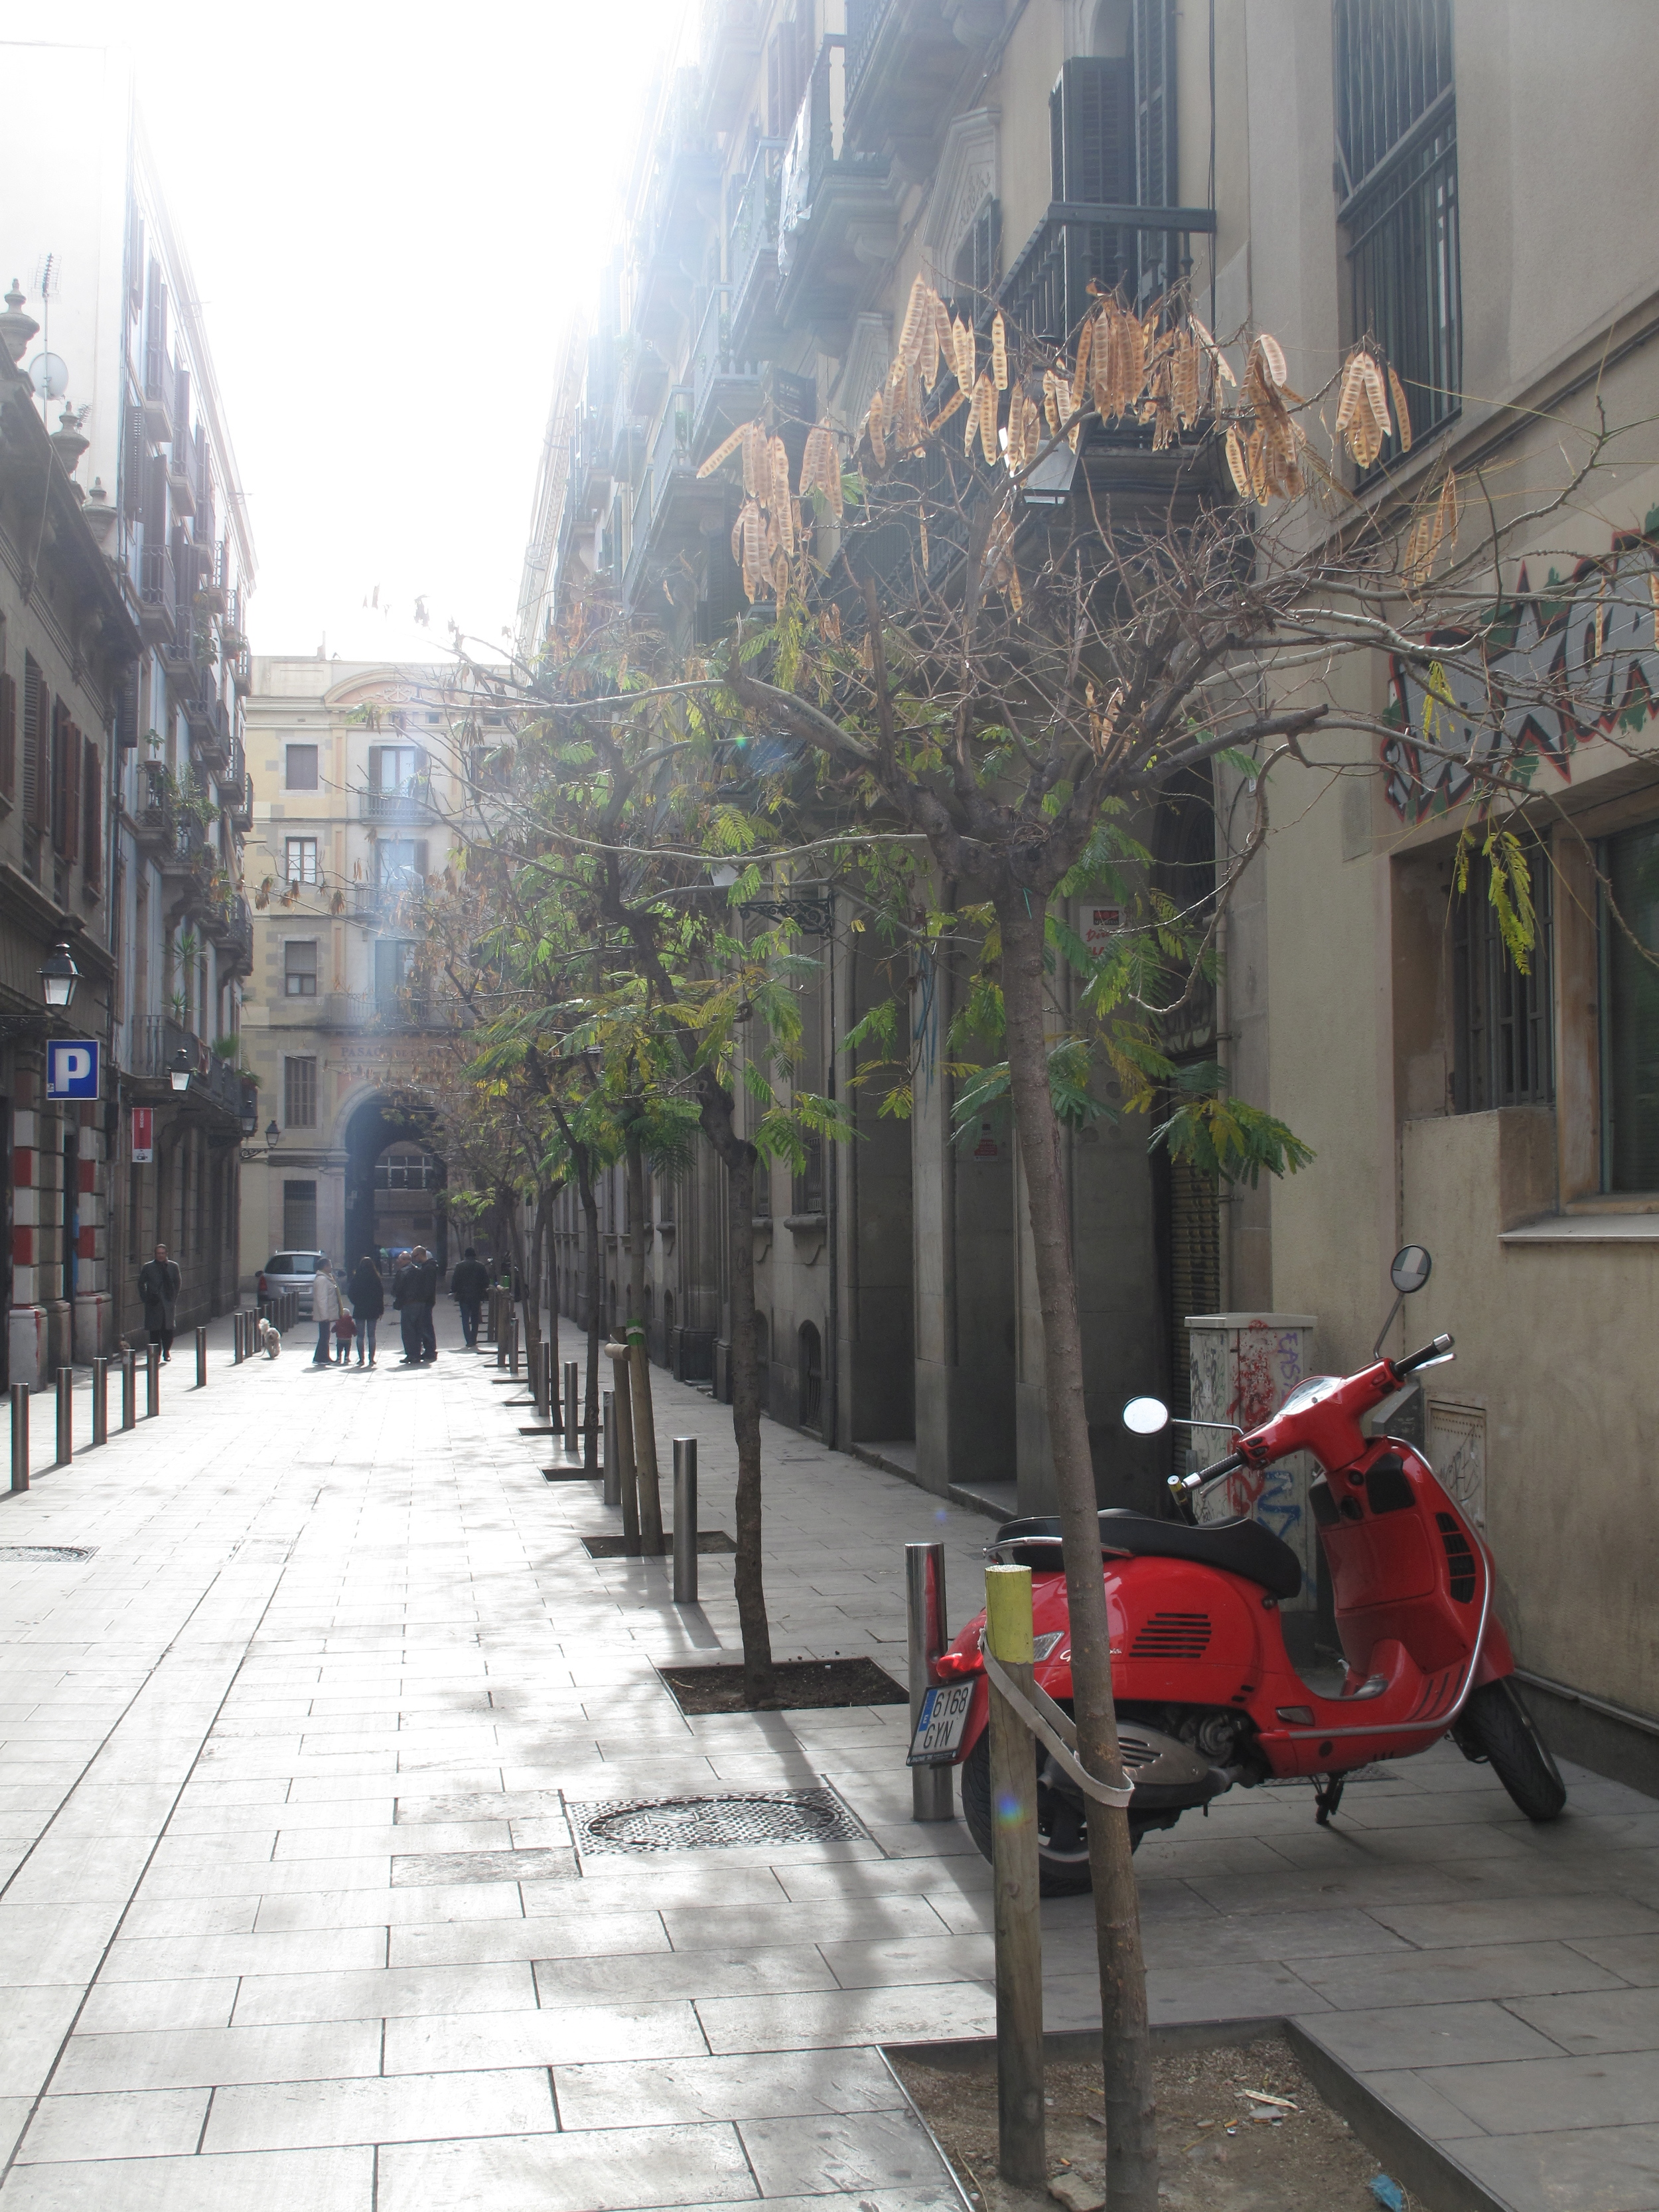 Red scooter in Barcelona old town.